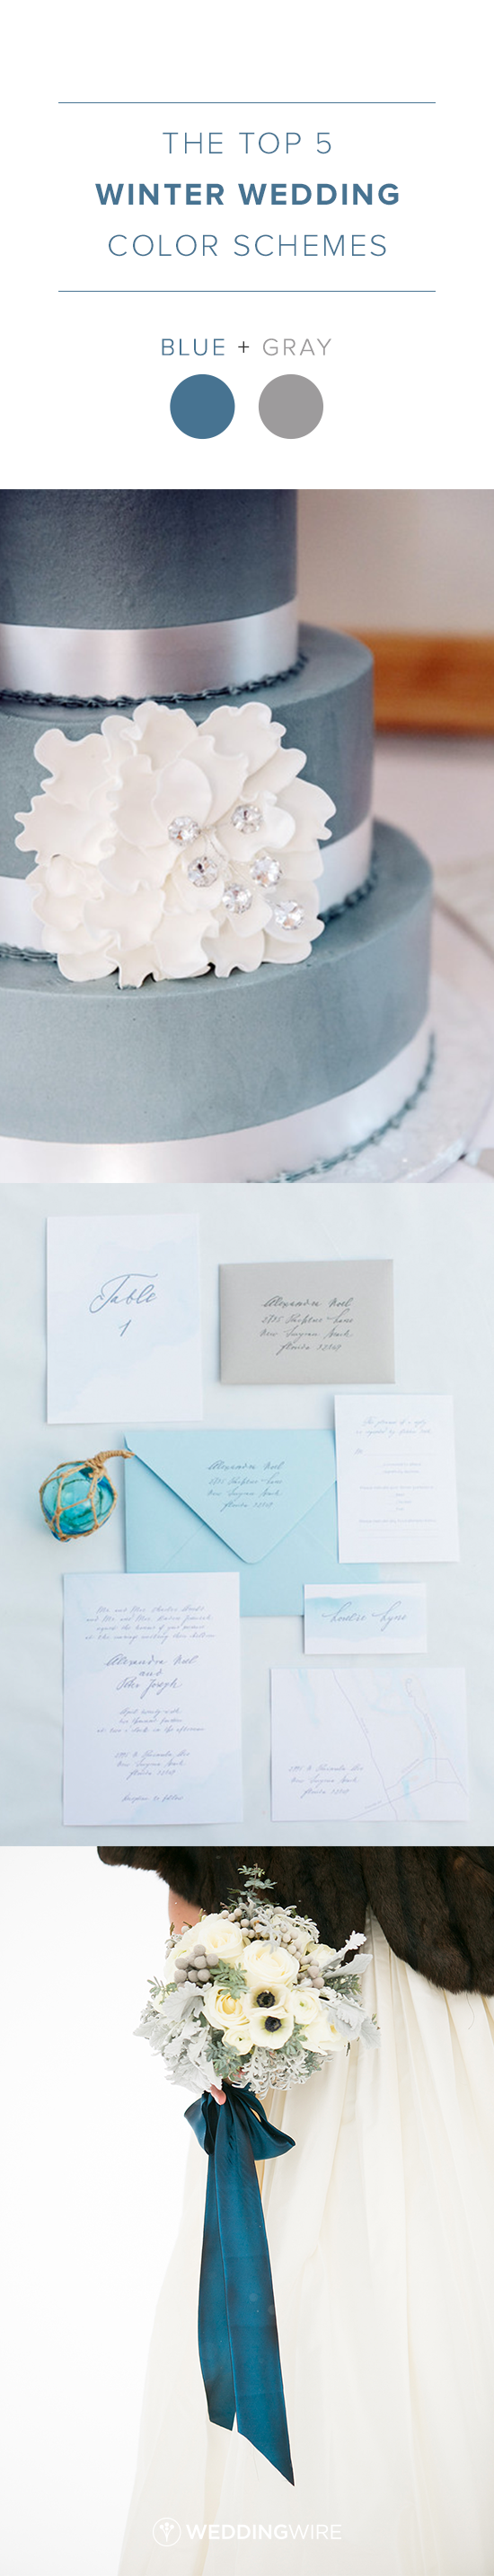 The Top 5 Winter Wedding Color Schemes: Blue and Gray Winter Wedding ...